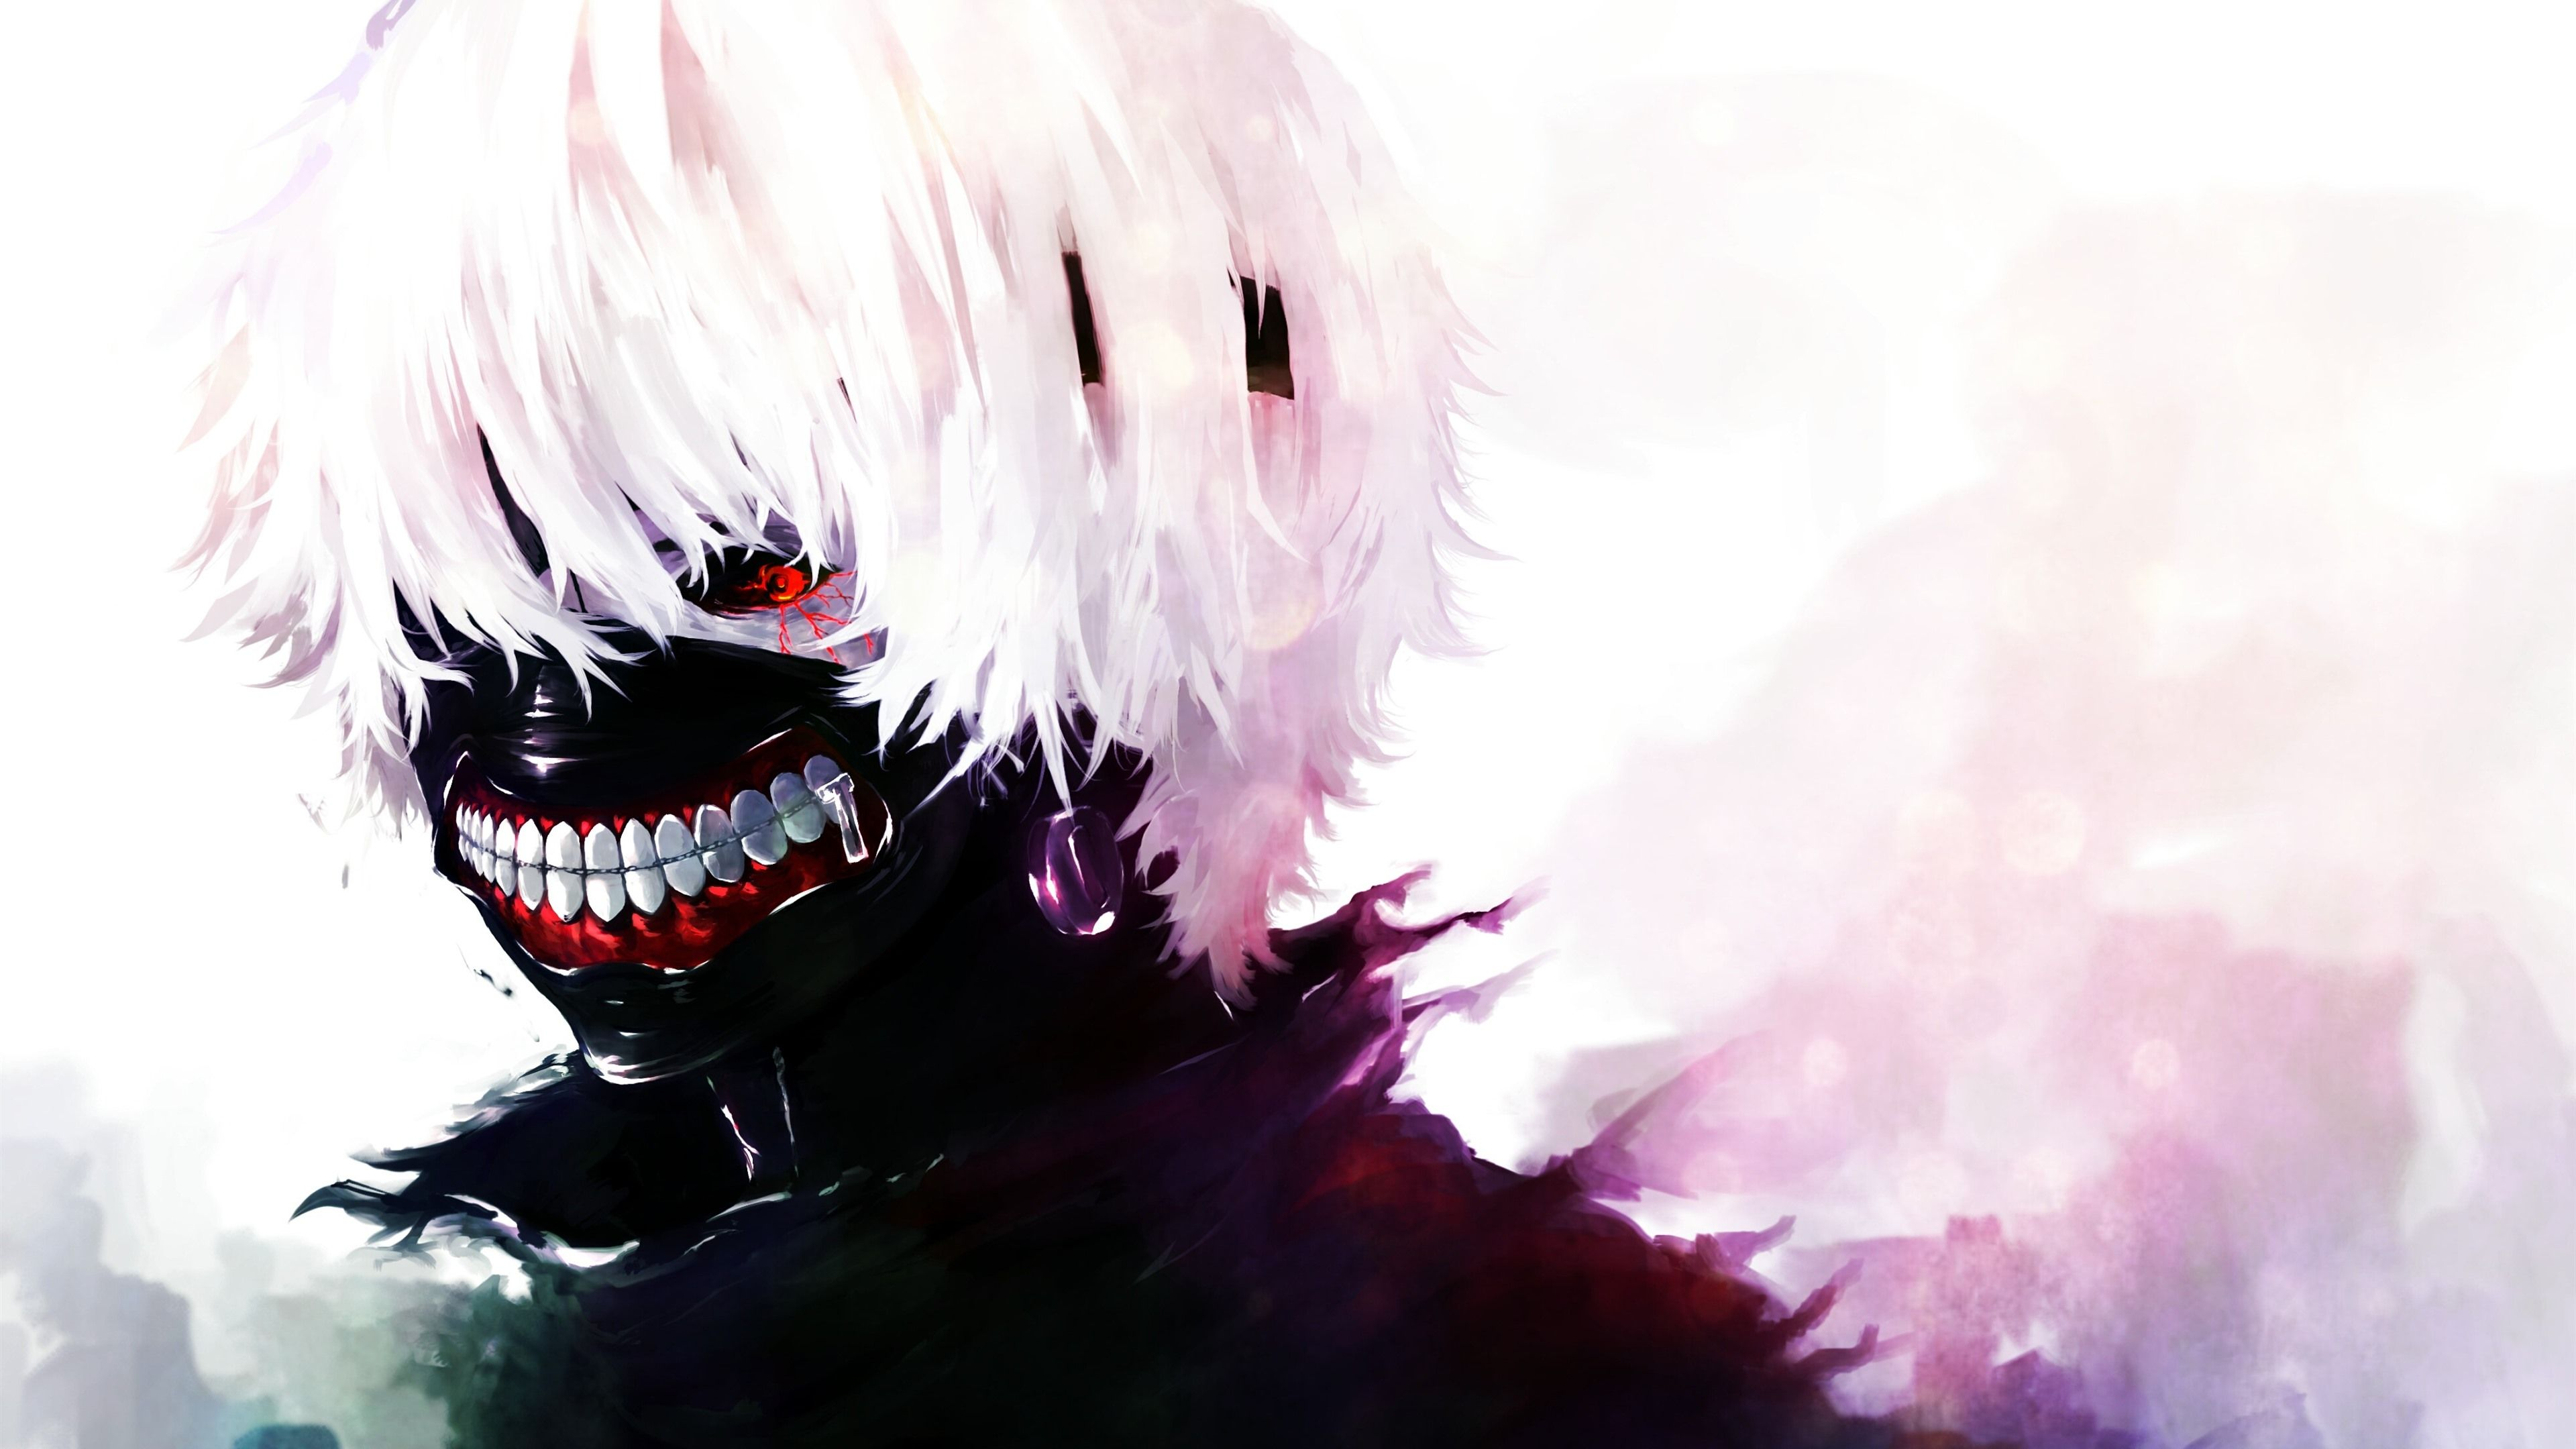 Anime Wallpaper 4k Tokyo Ghoul Wallpaper Tokyo Ghoul Classic Anime